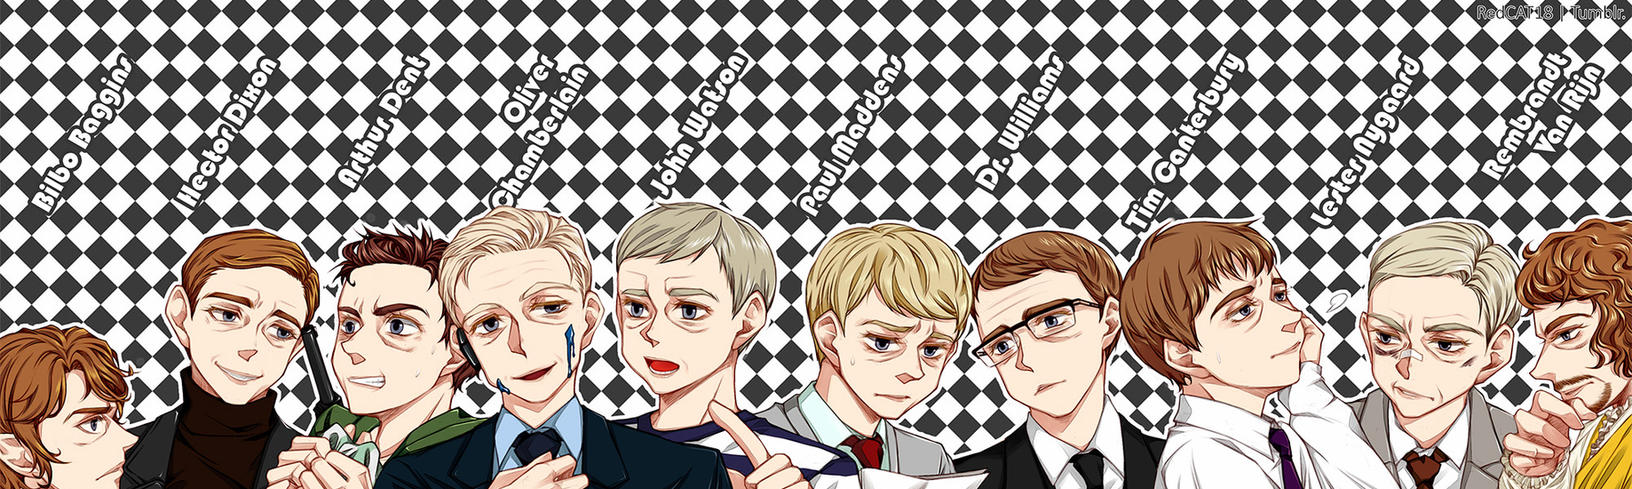 Full of Martin Freeman by RedCAT18